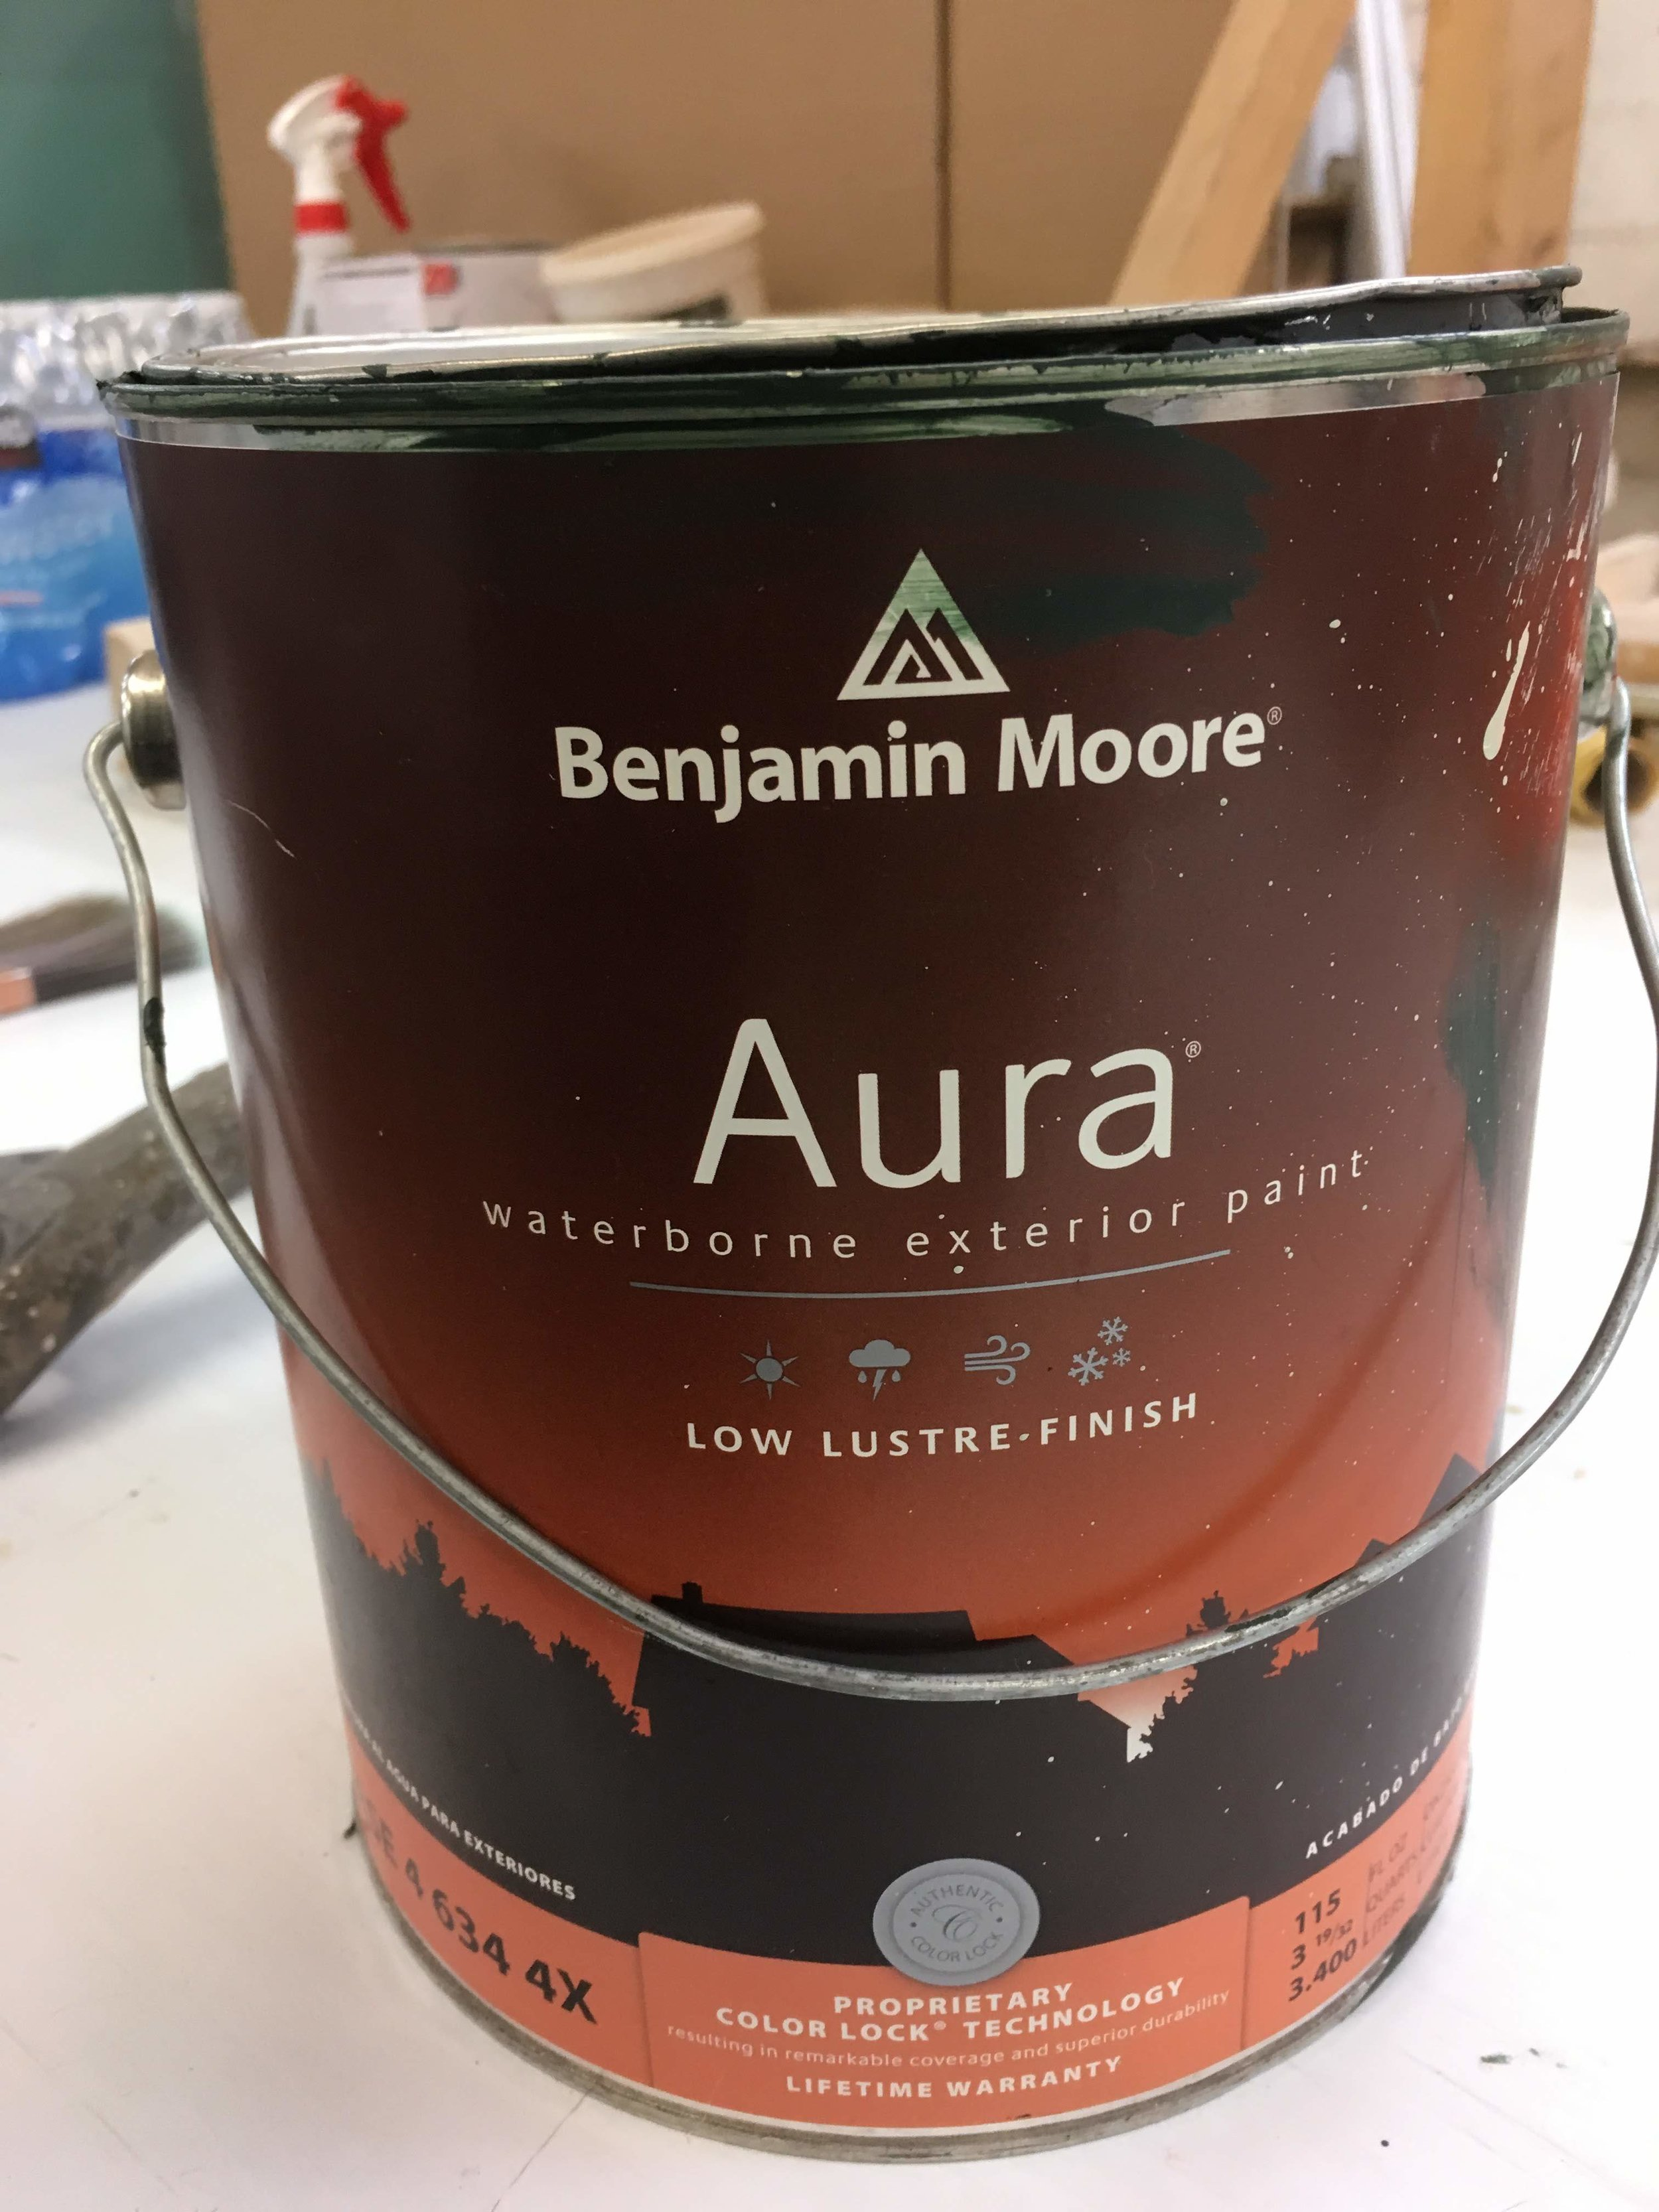 My Benjamin Moore rep says this is the best paint they've ever made, and we agree.  Expensive and worth it, high-bond, color retention, and most important for operable wooden windows, a surface tension higher than most other acrylic paints.